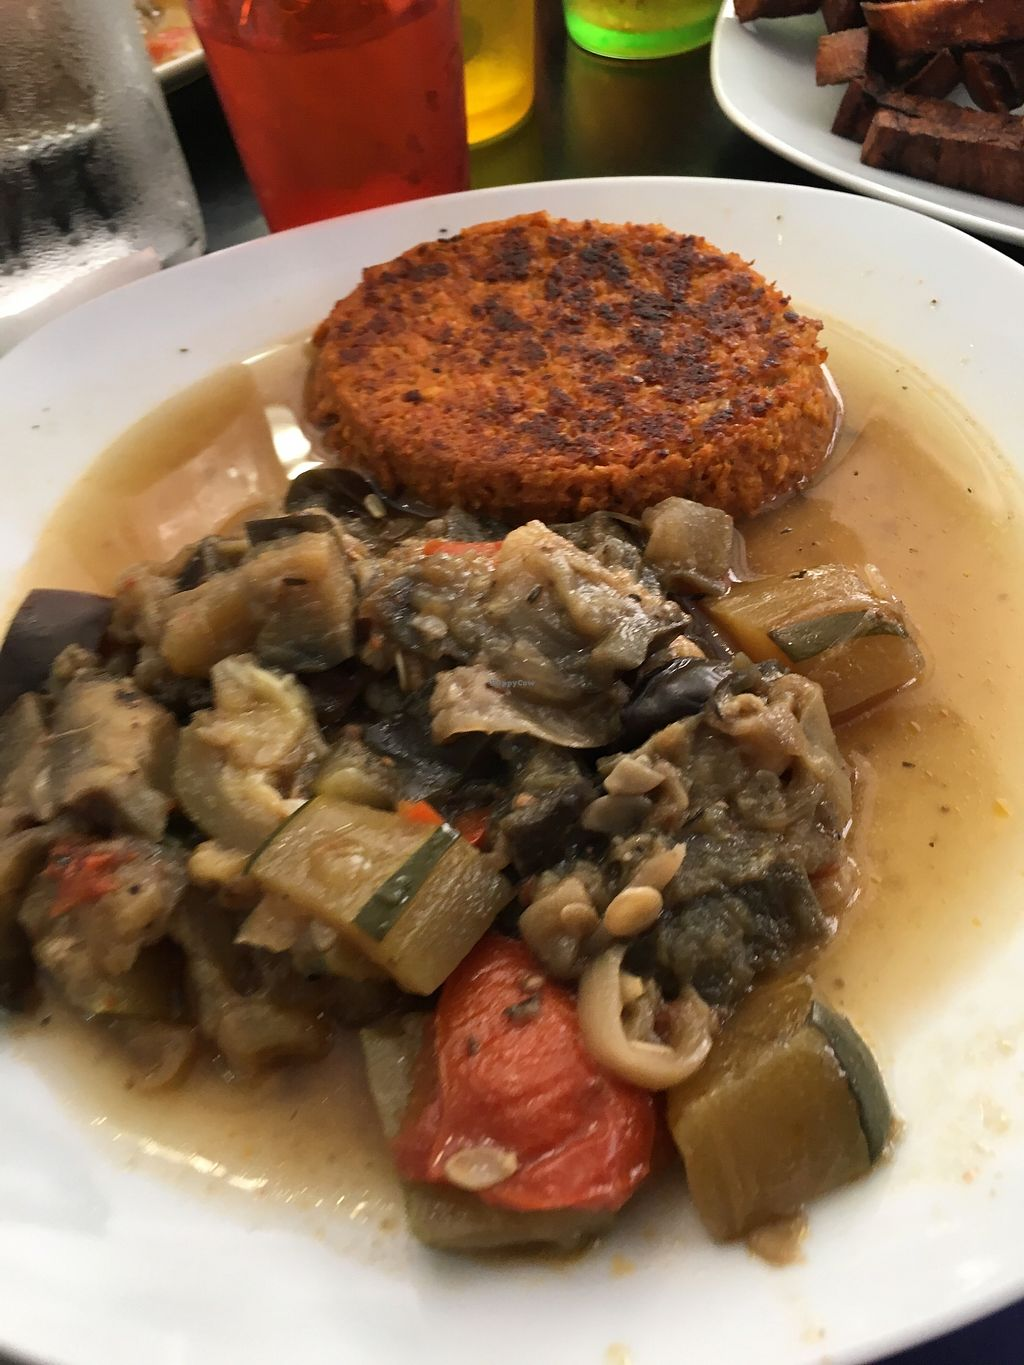 """Photo of Chic Planete  by <a href=""""/members/profile/vegan%20frog"""">vegan frog</a> <br/>Tofu patty and aubergine <br/> June 23, 2017  - <a href='/contact/abuse/image/85341/272662'>Report</a>"""